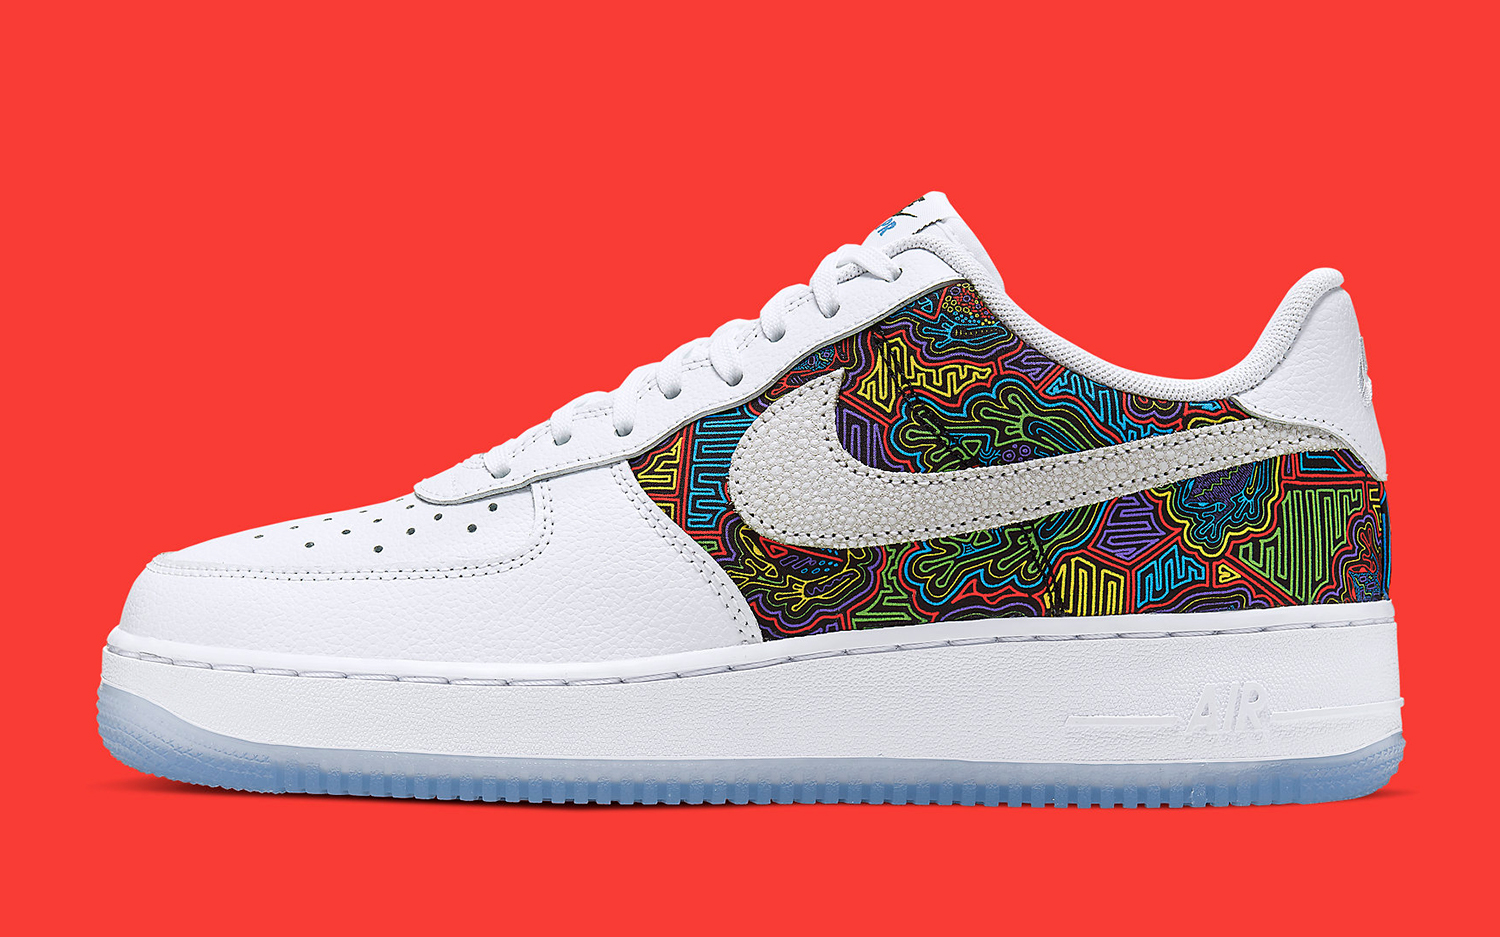 diario capitalismo pétalo  Colorful Coqui Cover Nike's Annual Puerto Rican Day Air Force 1 Low 🇵🇷 -  HOUSE OF HEAT | Sneaker News, Release Dates and Features